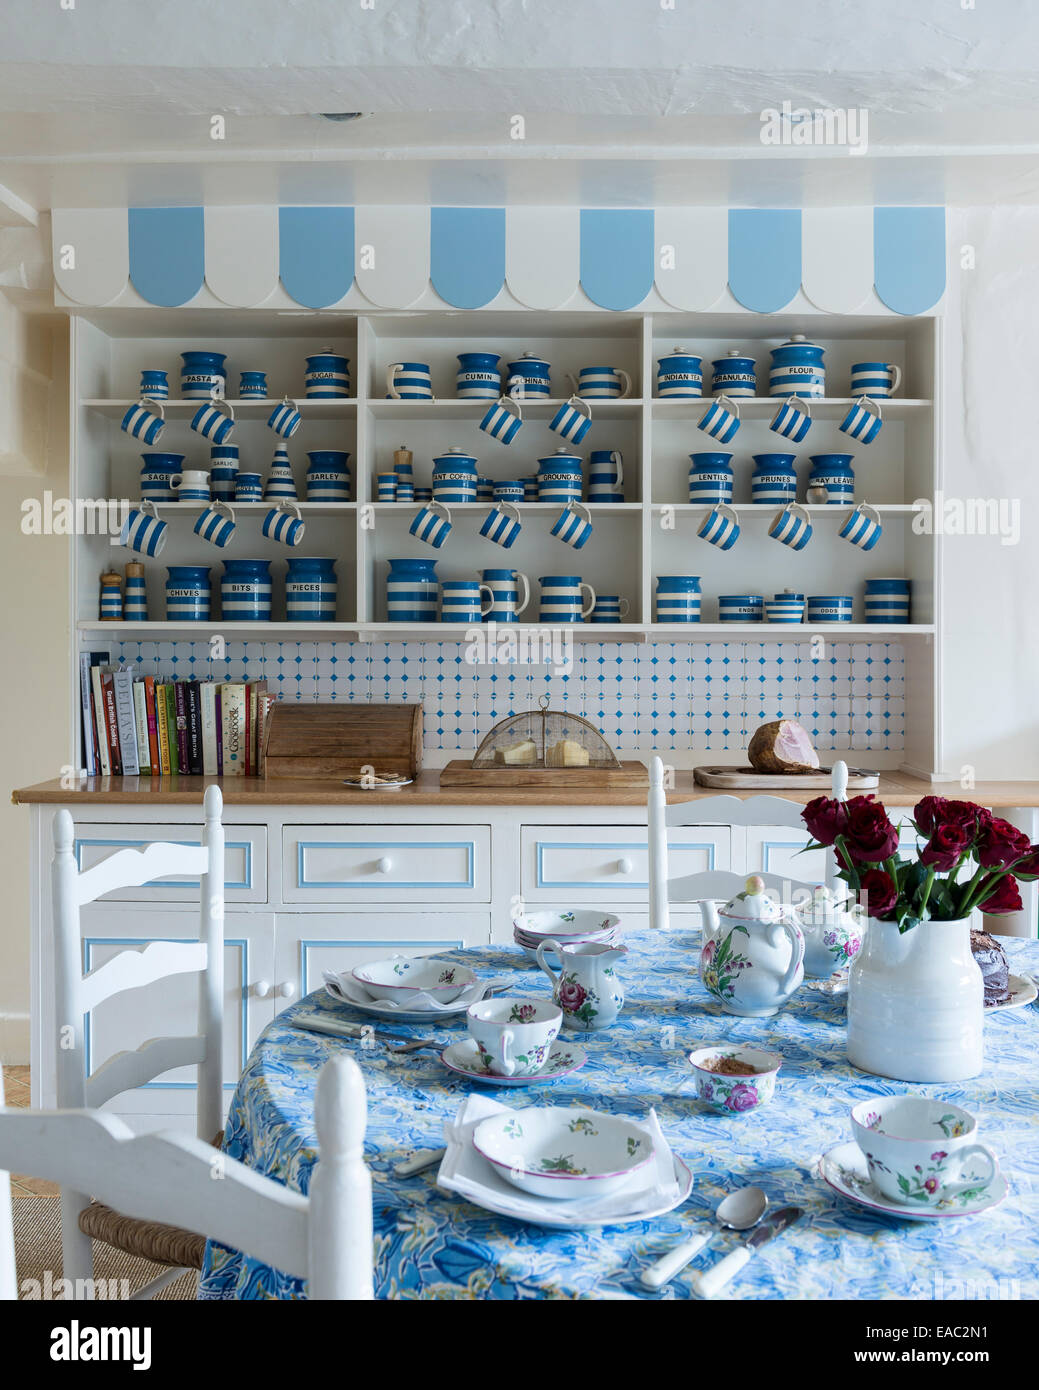 Cornishware Stock Photos & Cornishware Stock Images - Alamy